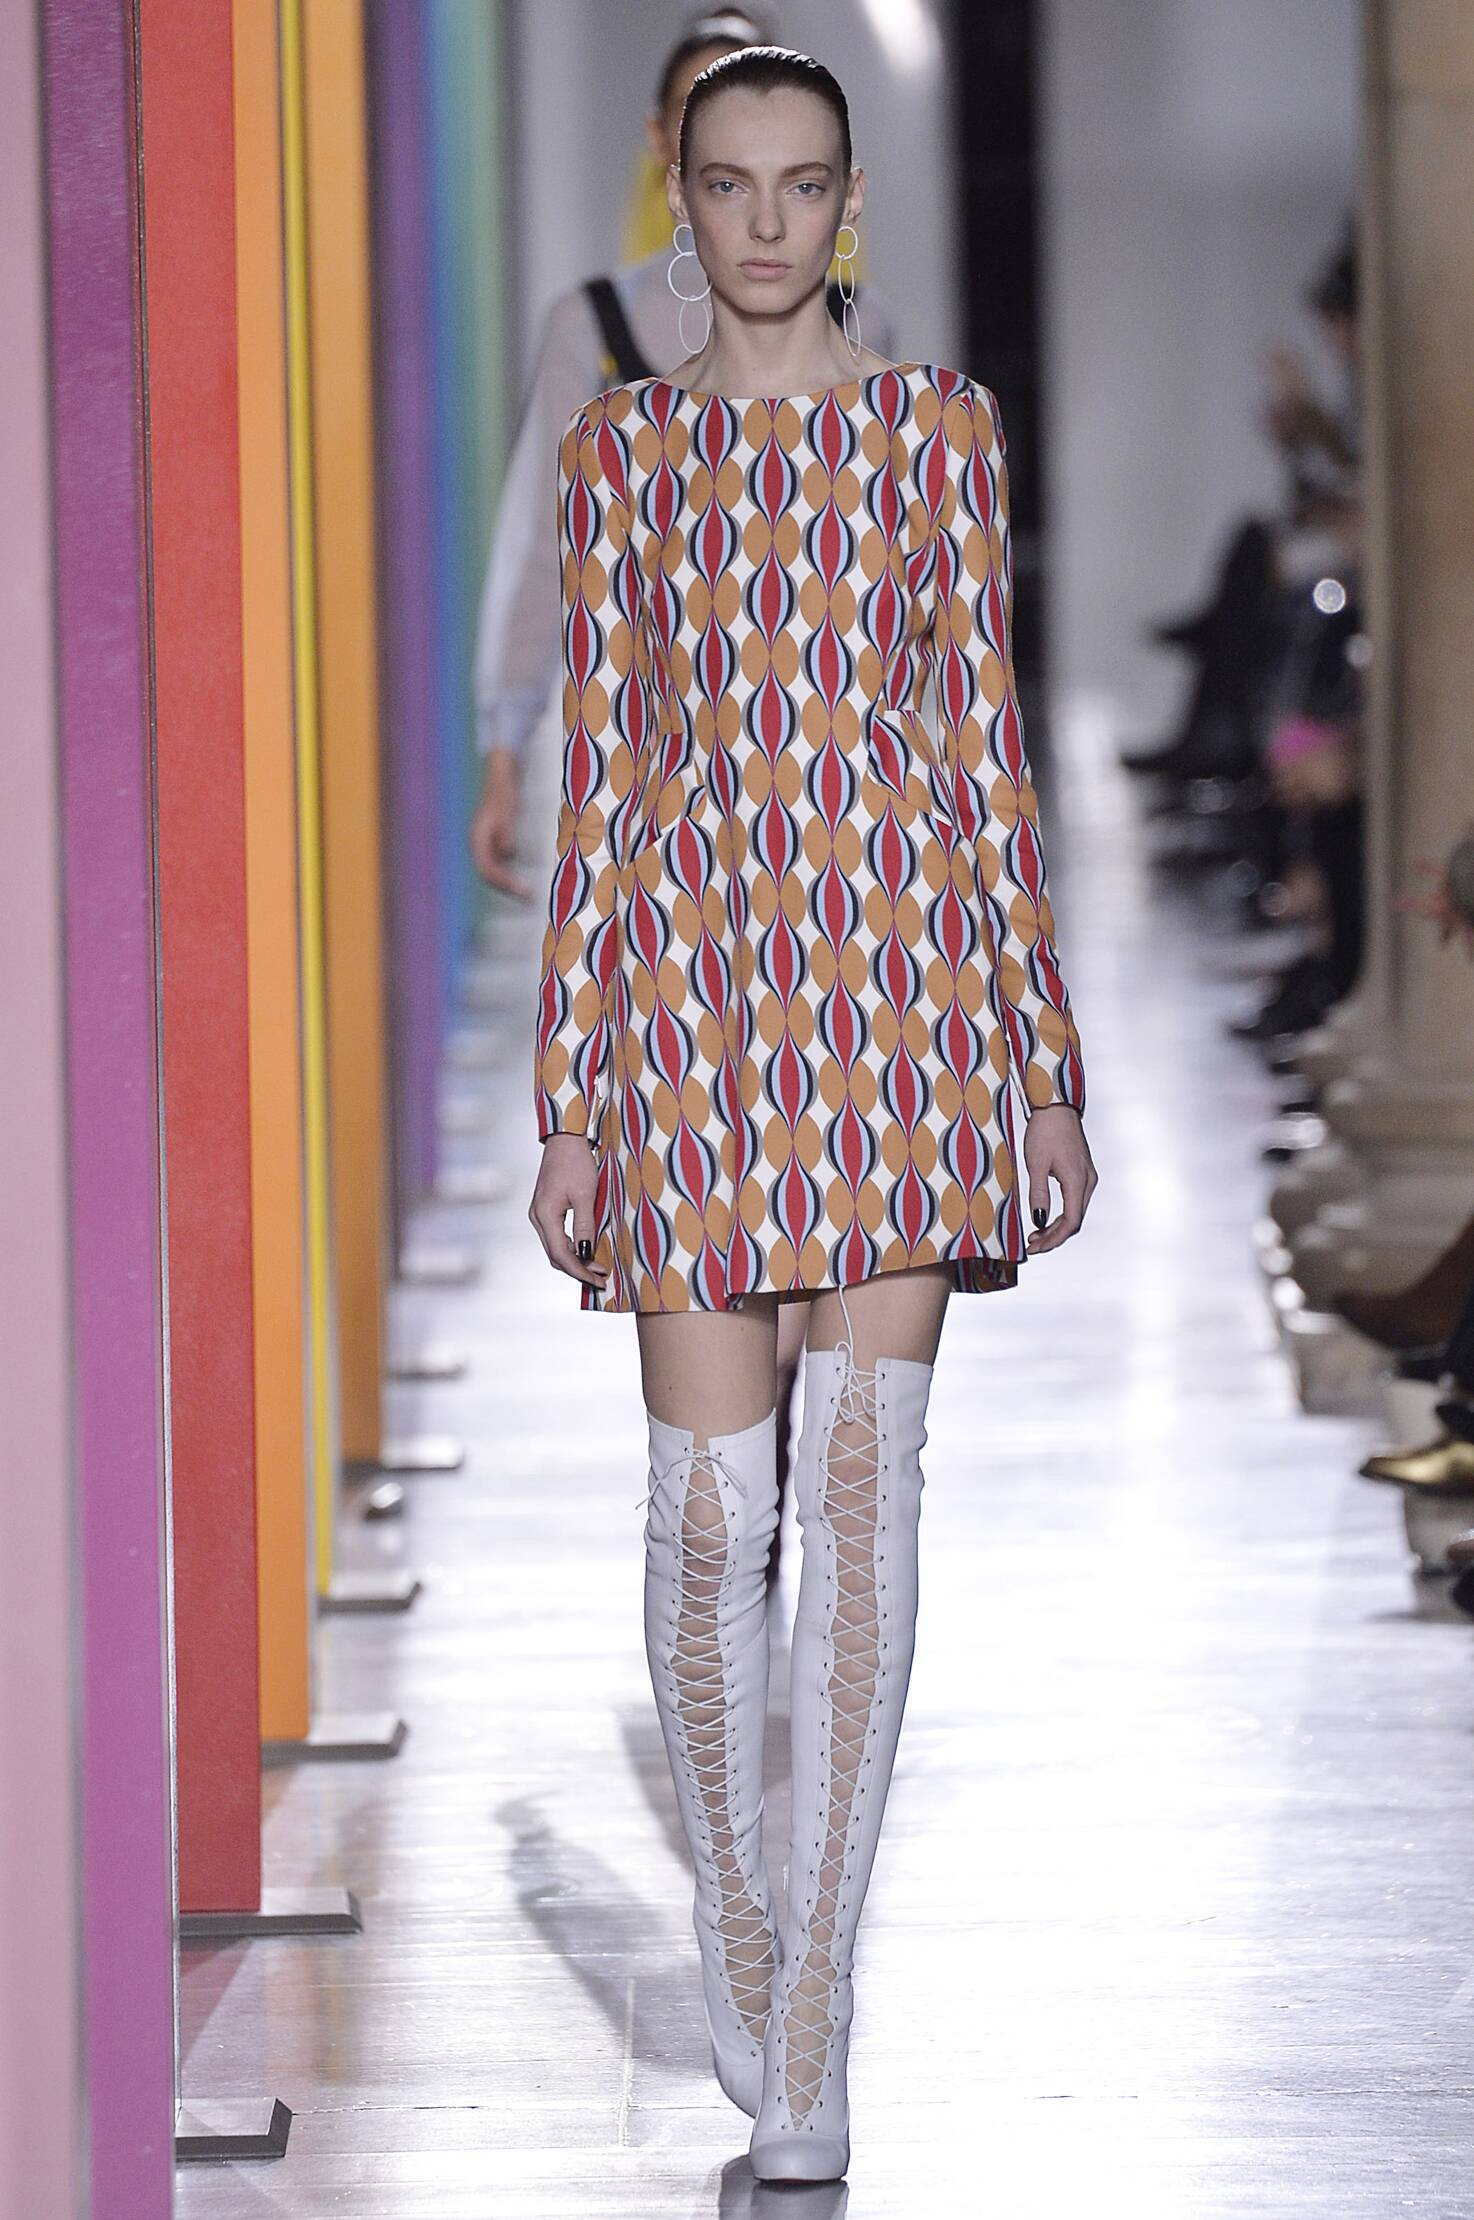 Jonathan Saunders Collection Fashion Trends